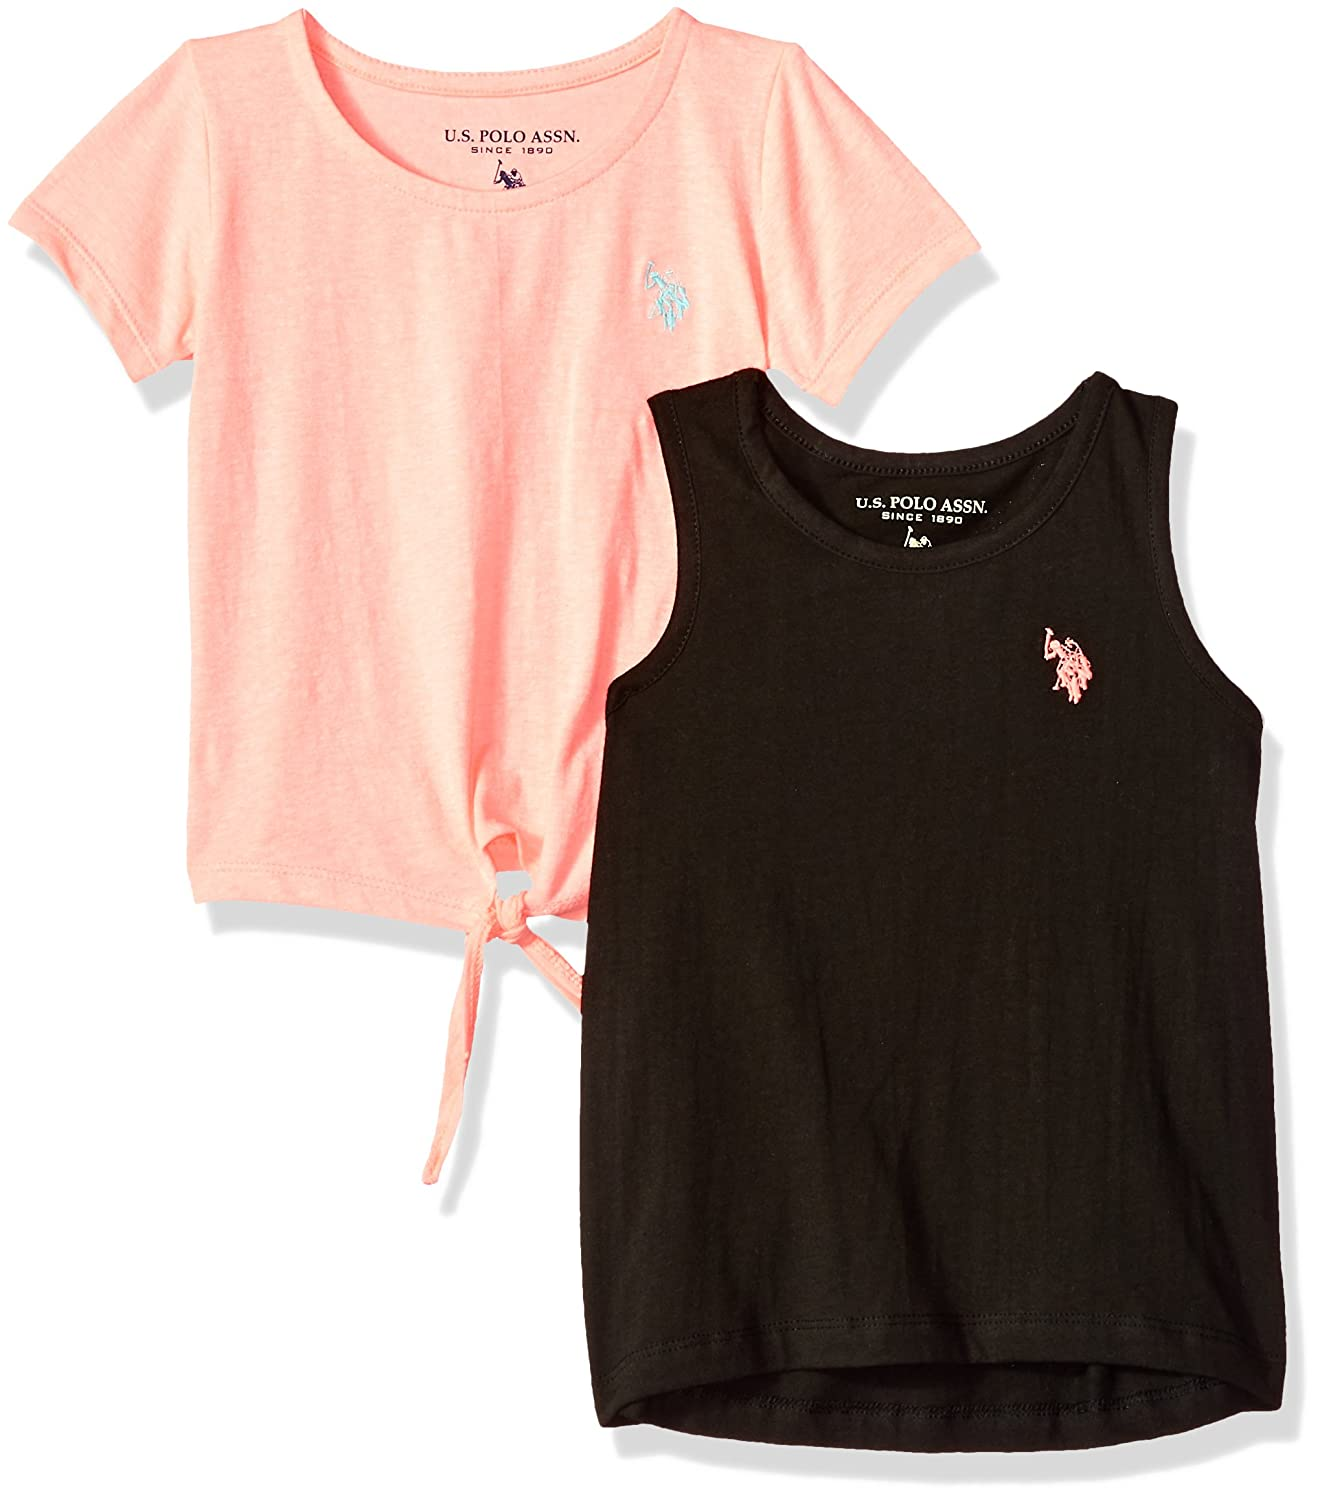 U.S. Polo Assn. Girls Toddler T Shirt Pack, Black Tank neon Coral ...